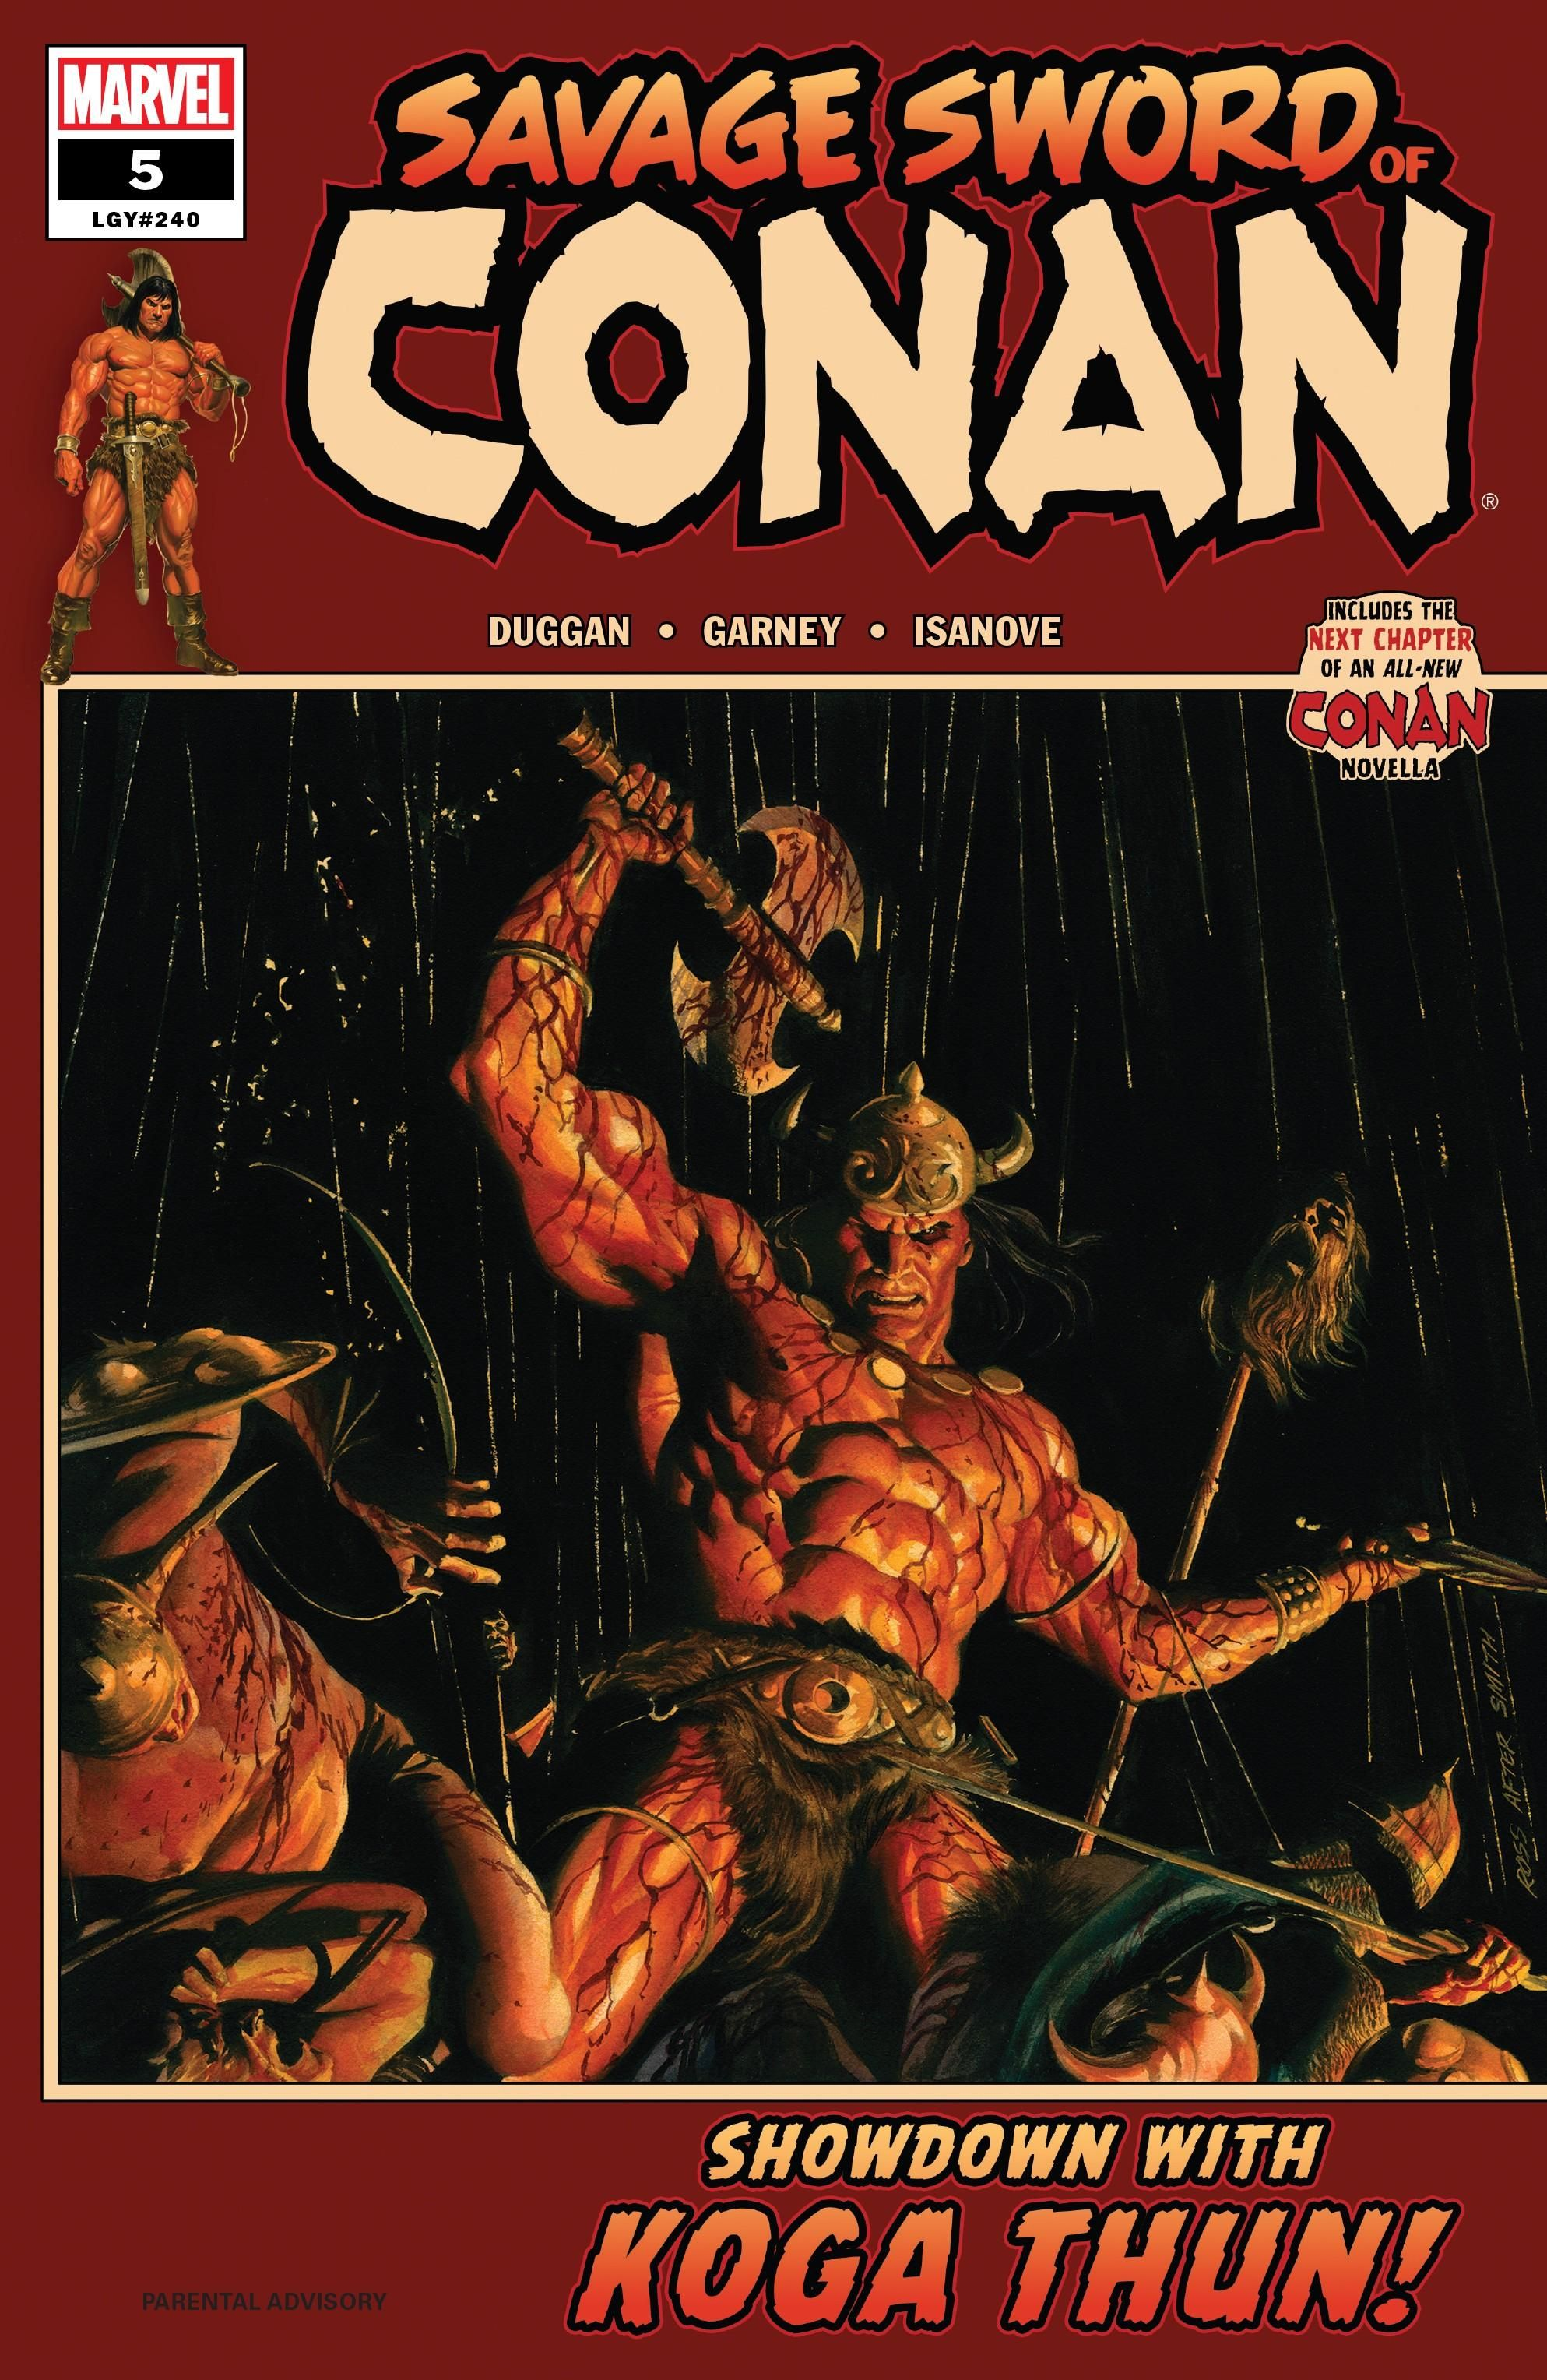 Savage Sword of Conan Vol 2 5